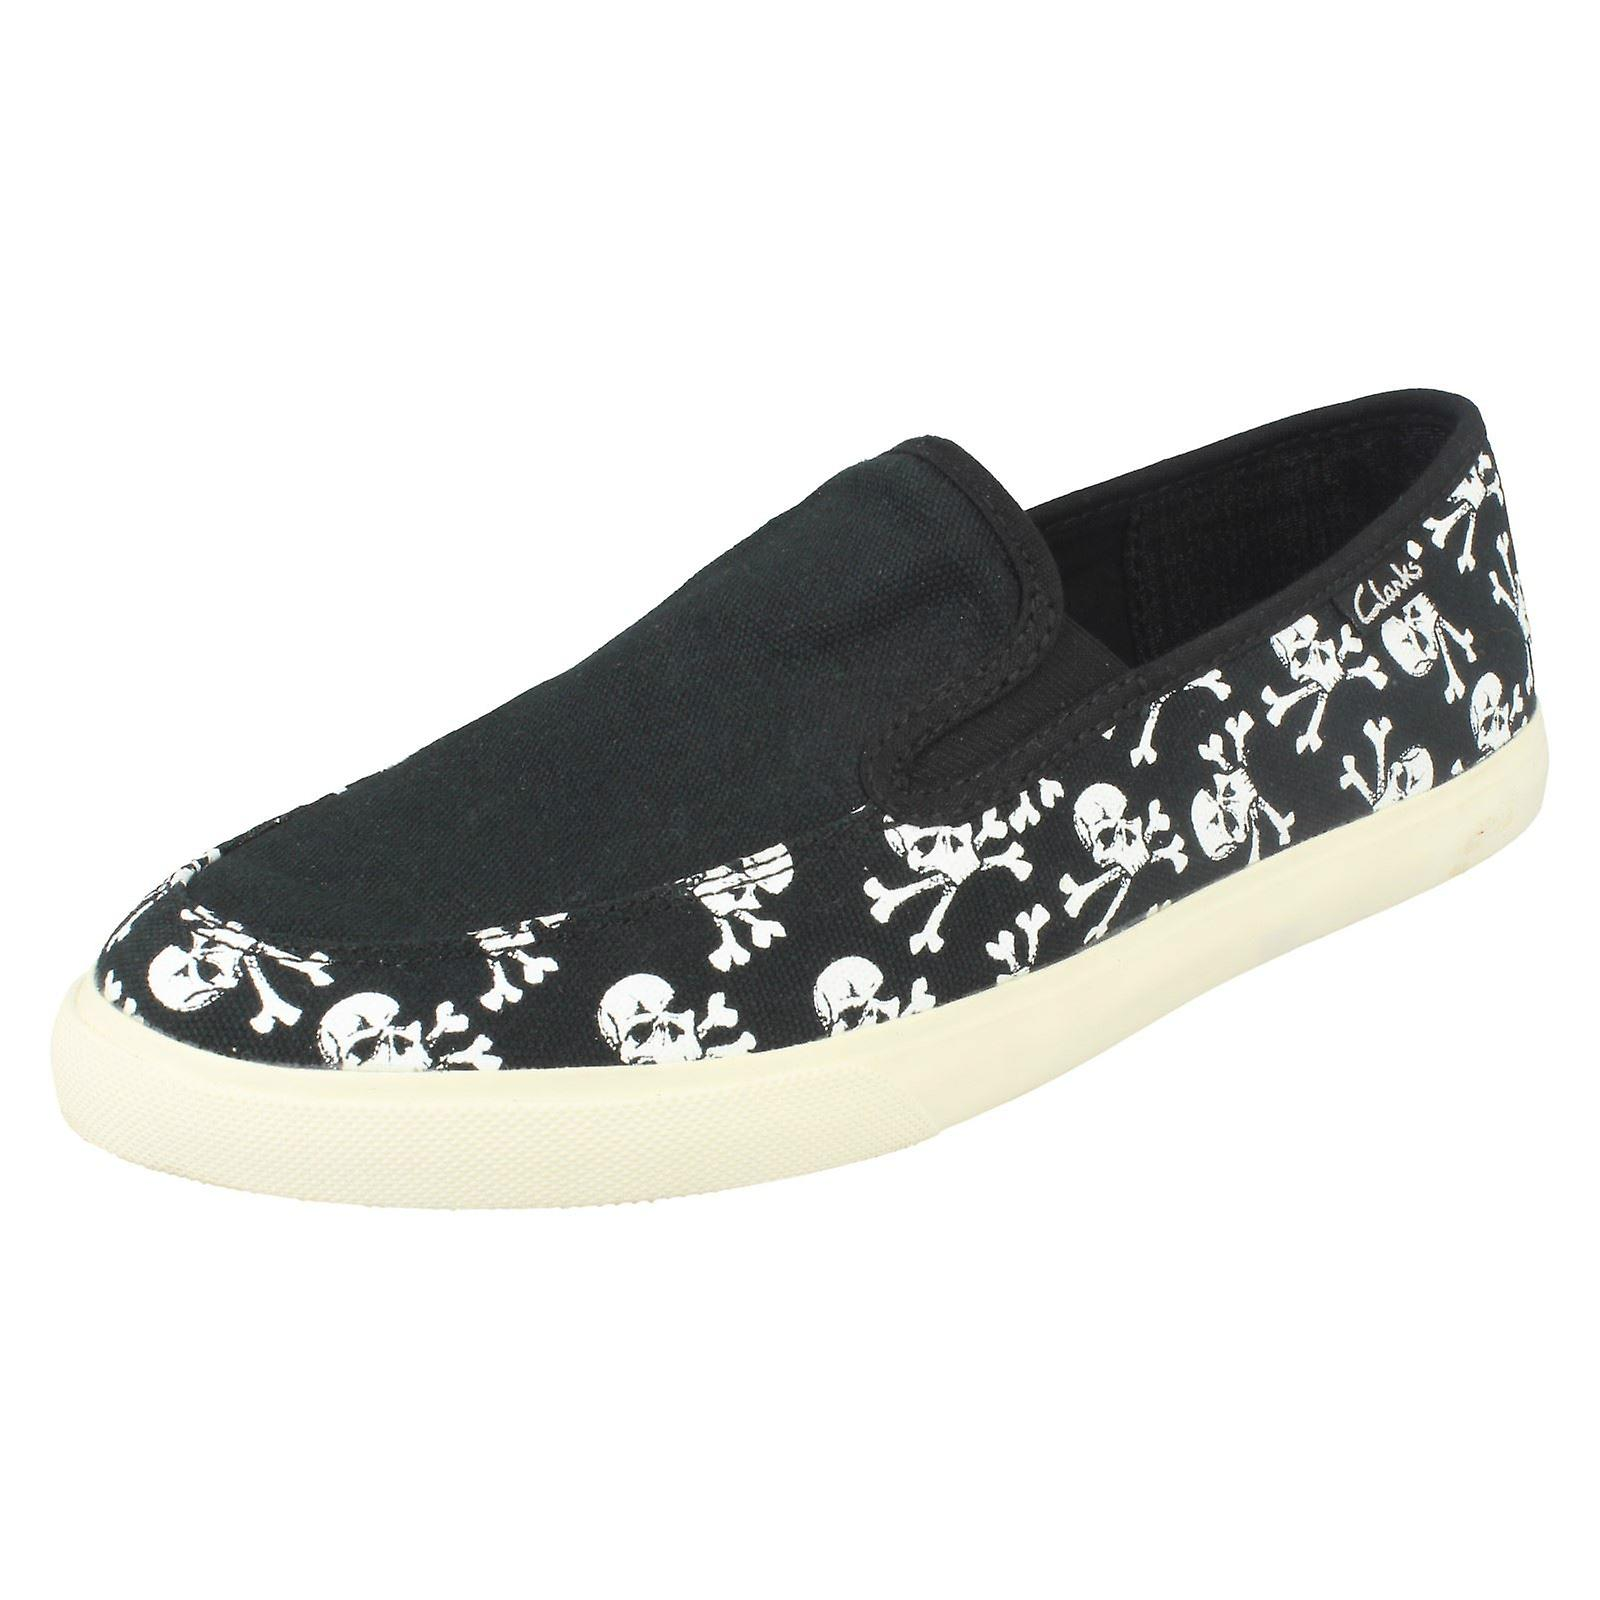 Boys Clarks Casual Casual Casual Shoes Club Sand 4a5725